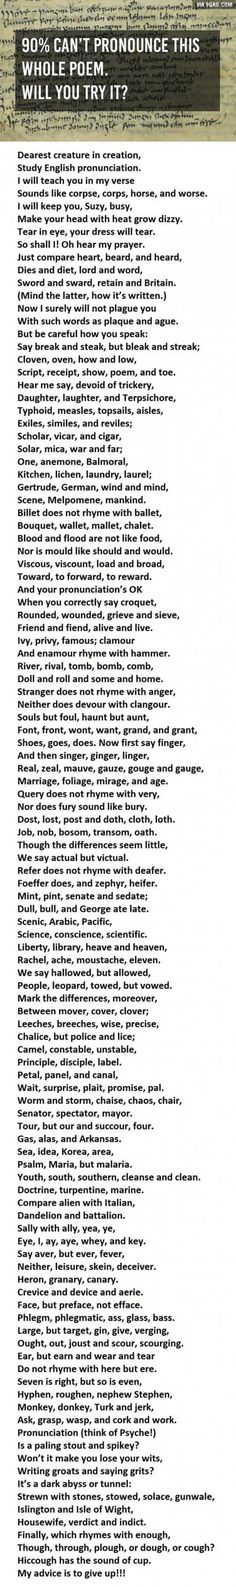 90% Of People Can't Pronounce This Whole Poem. I was able to pronounce most of it, I wanna say I missed like 5 words